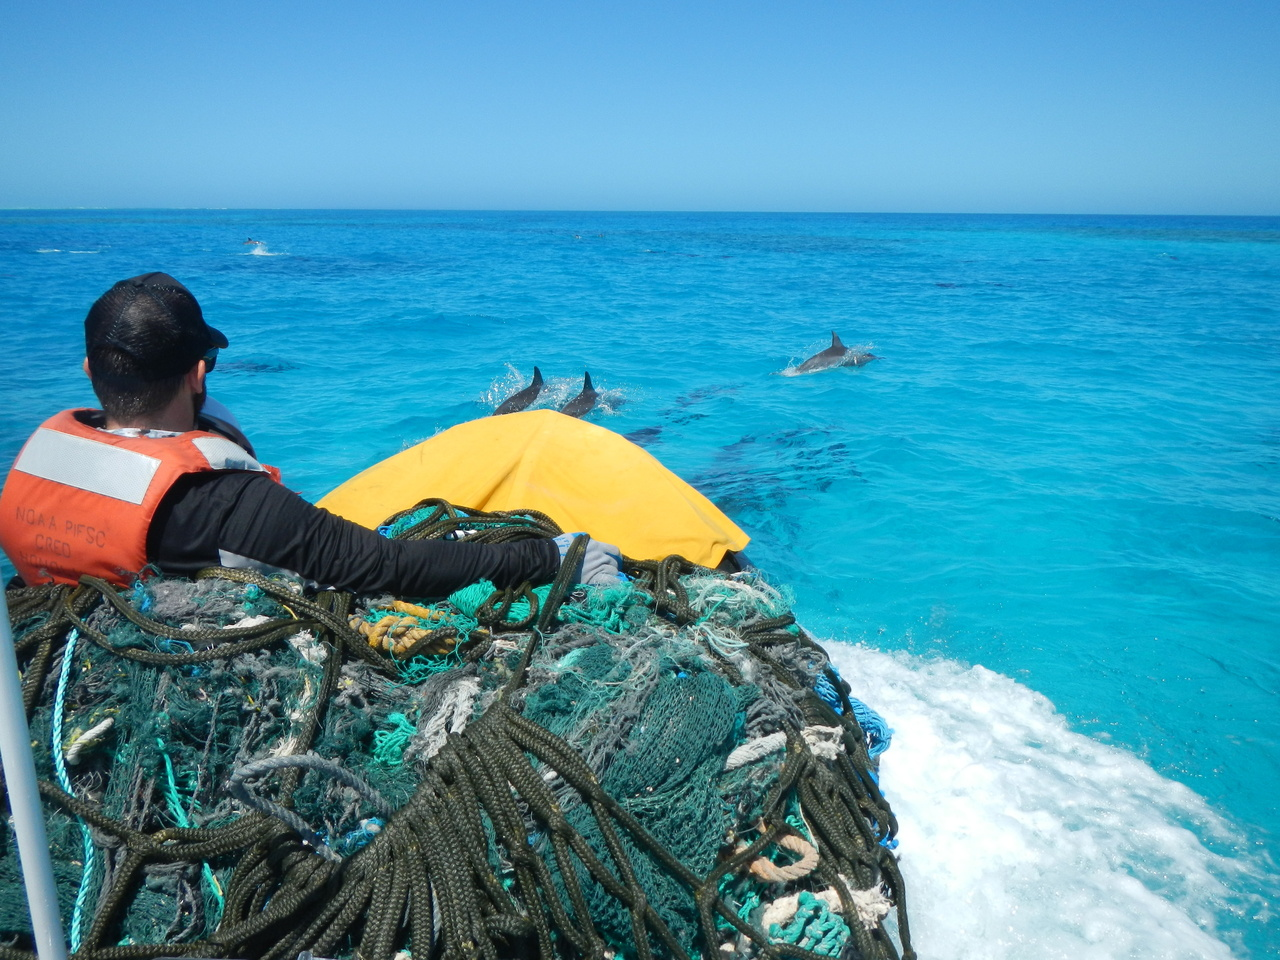 A group of Spinner Dolphins escorted the Marine Debris team during their 21 kilometer transit through the interior of Pearl and Hermes Atoll back to the NOAA Ship Hi'ialakai.  On May 3, 2016 the team completed operations at Pearl and Hermes after removing 2,100 lbs of derelict fishing nets from the shoreline of Southeast Island. Photo: NOAA Fisheries